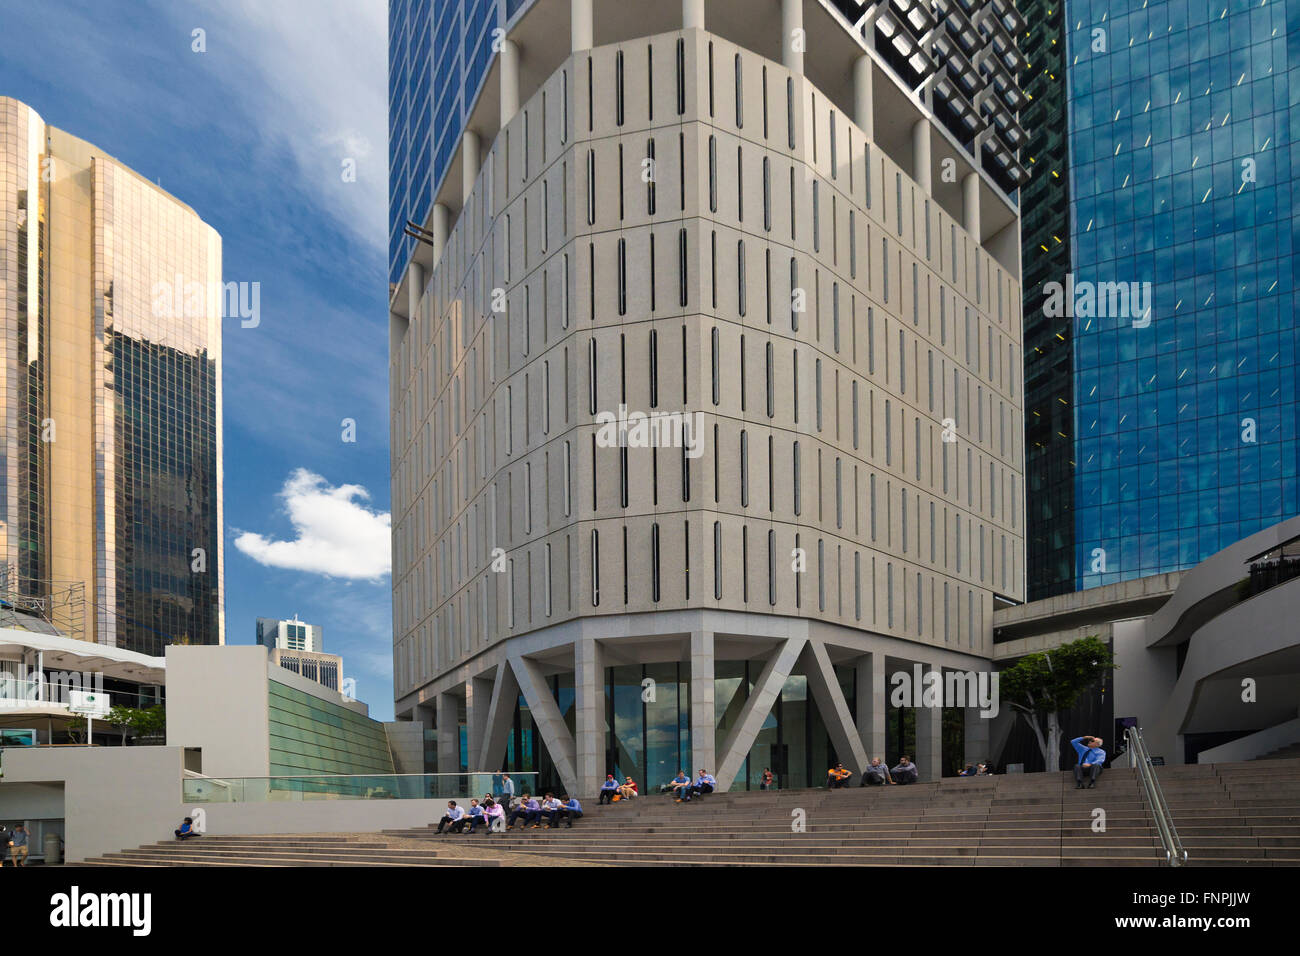 White collar office workers take lunch overshadowed by the high rise office blocks in Brisbane, Queens central business - Stock Image